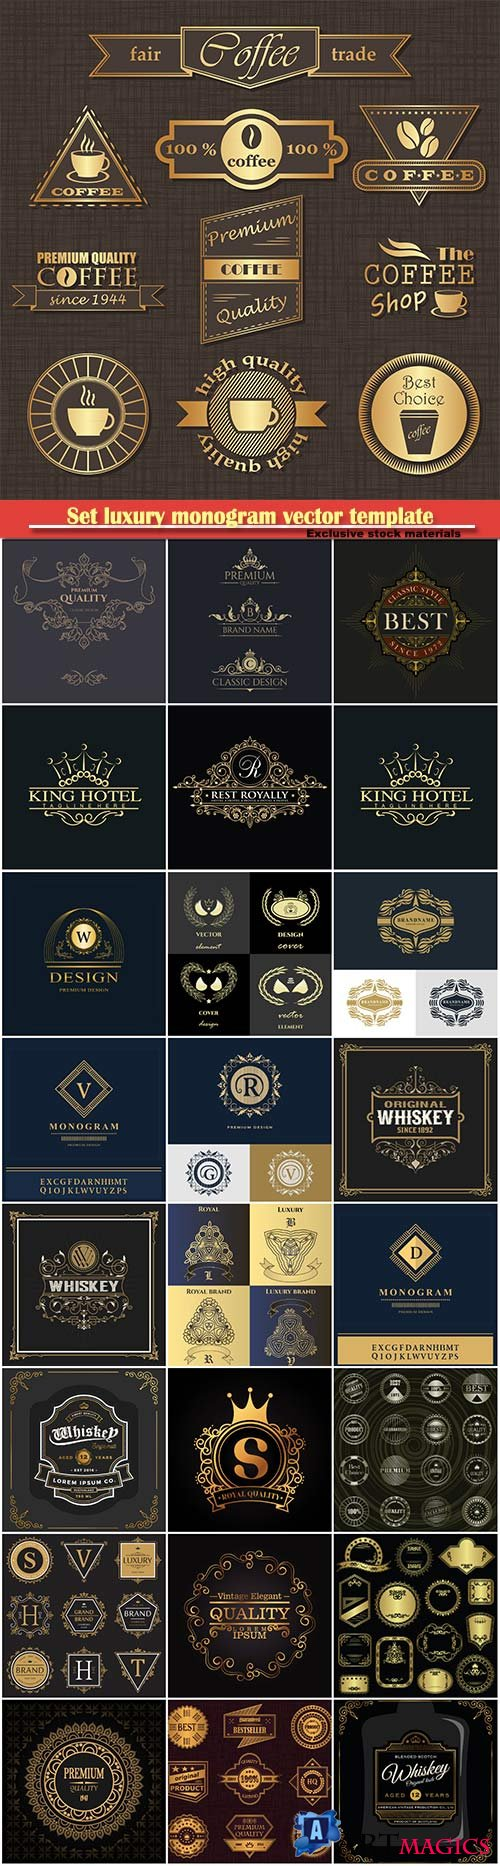 Set luxury monogram vector template, logos, badges, symbols # 7